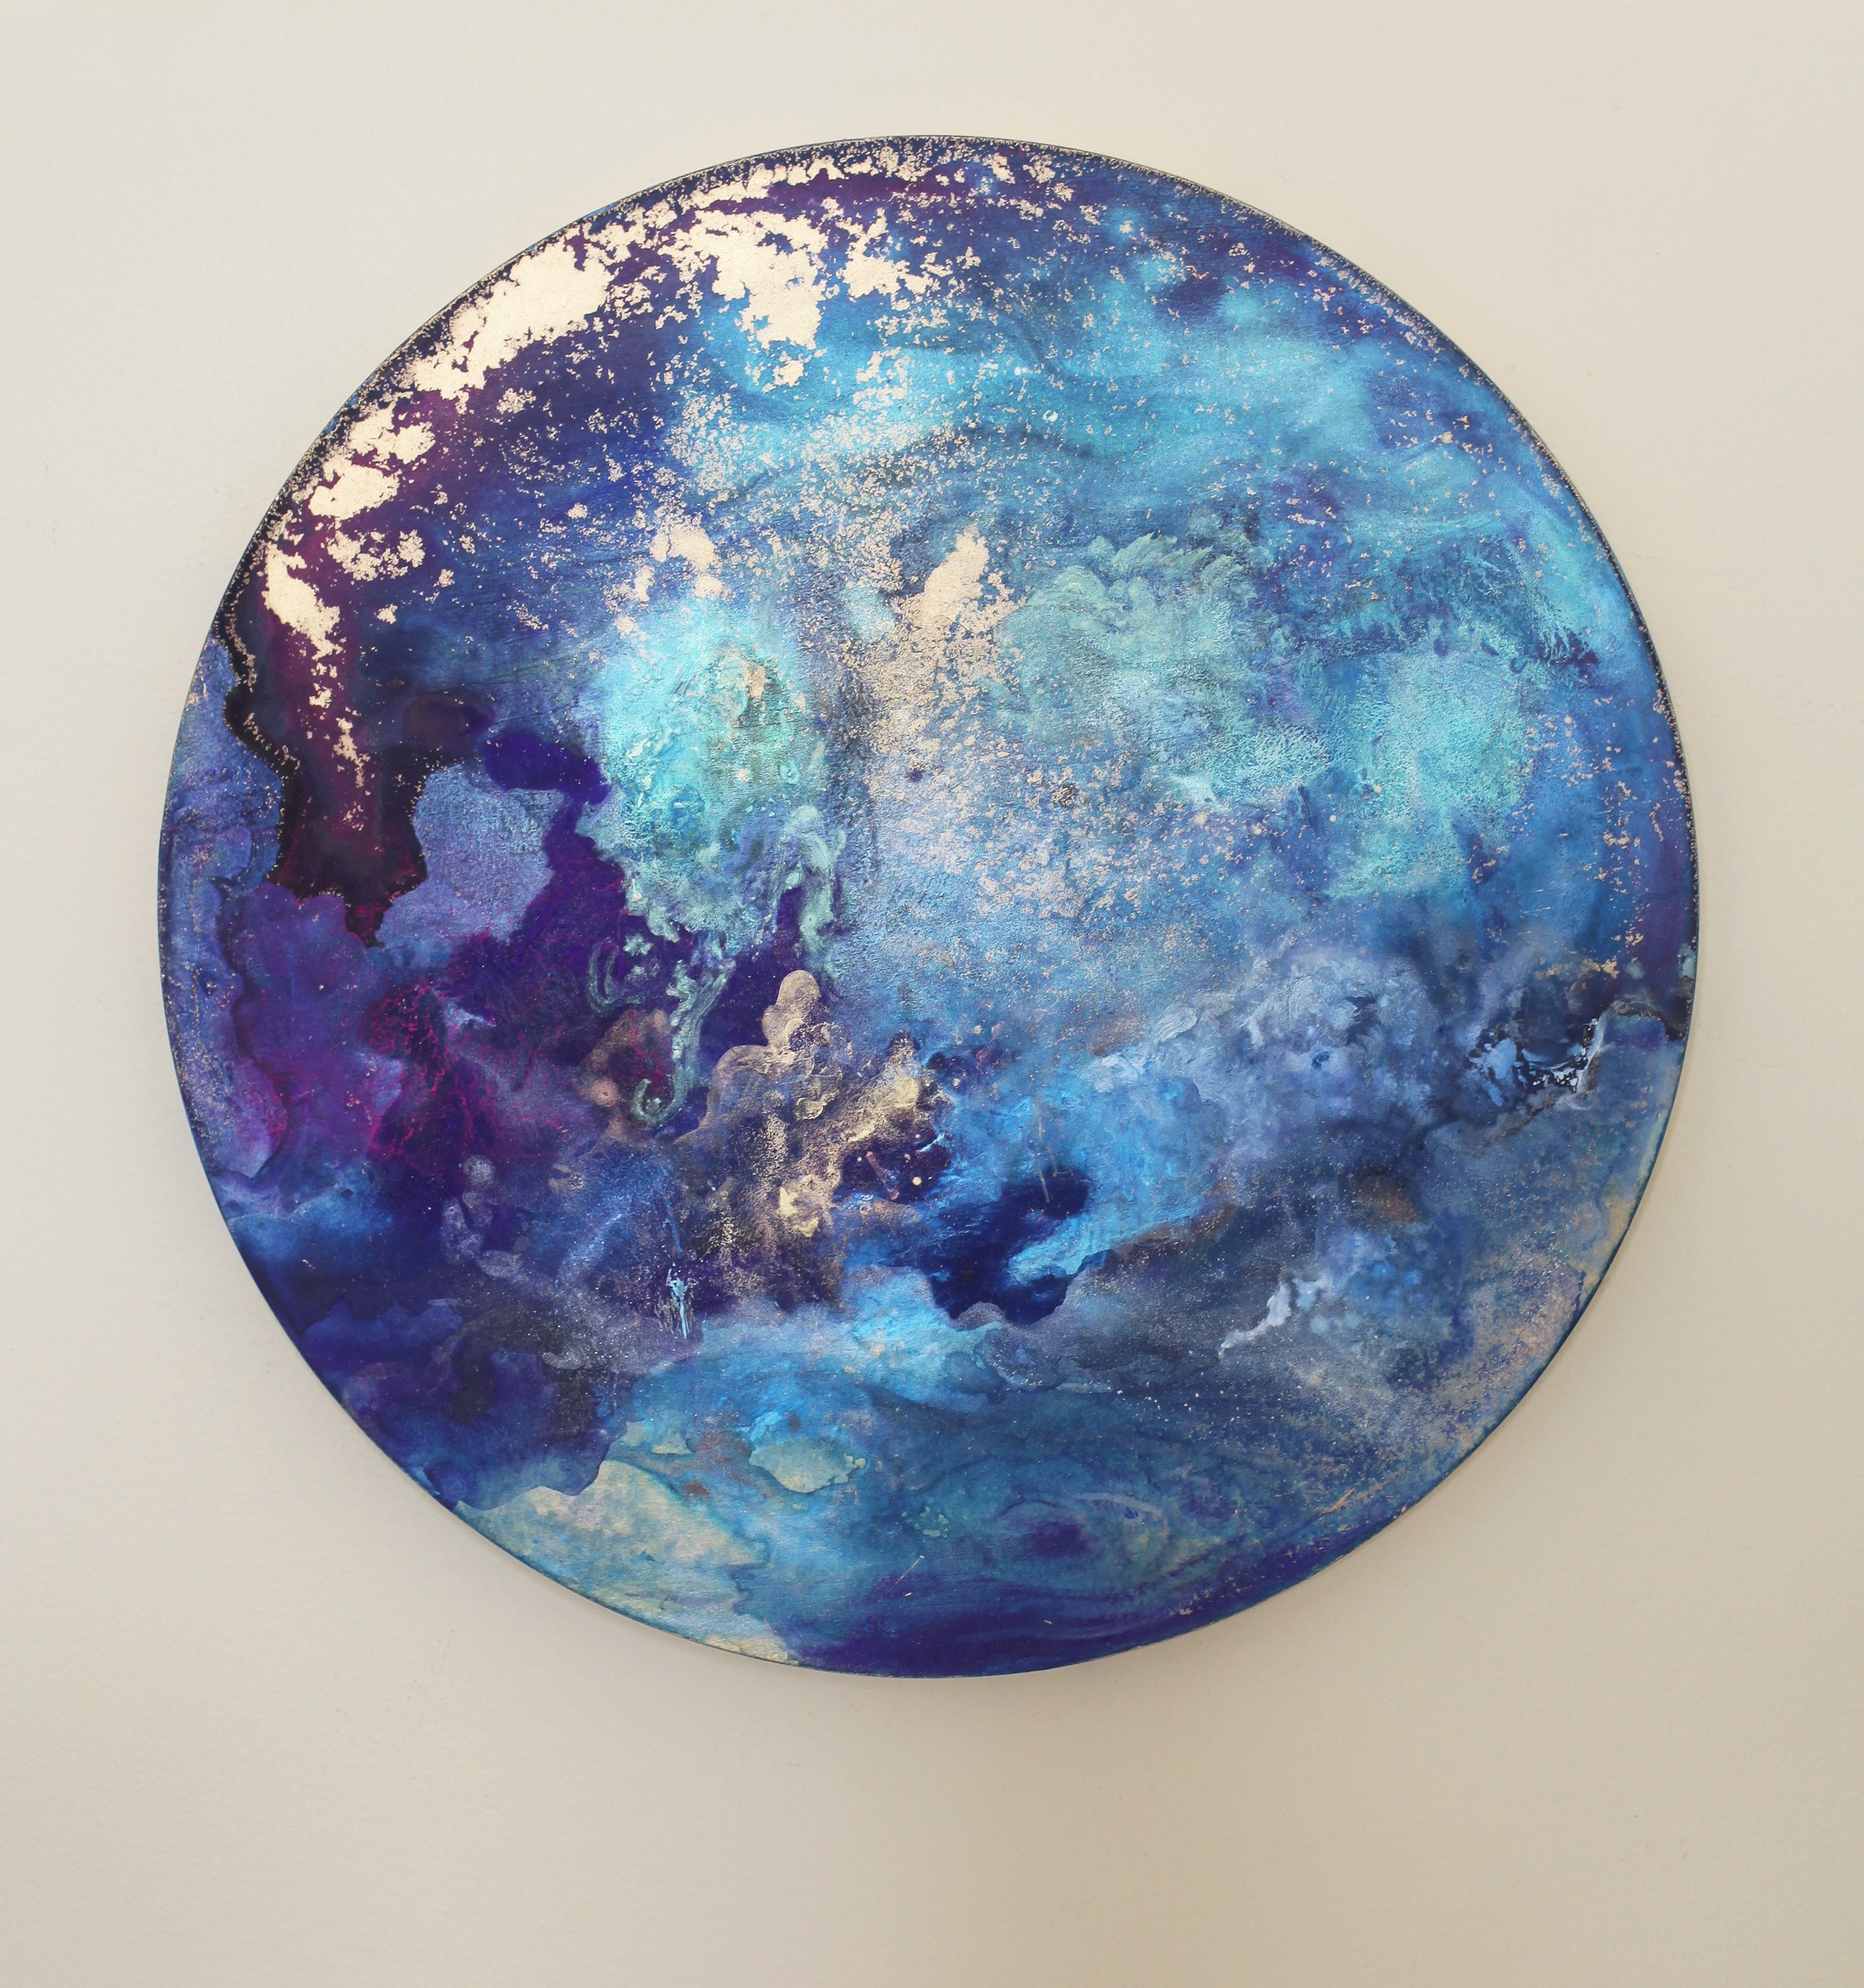 M7  2014  Acrylic and metal powder on board  41cm diameter